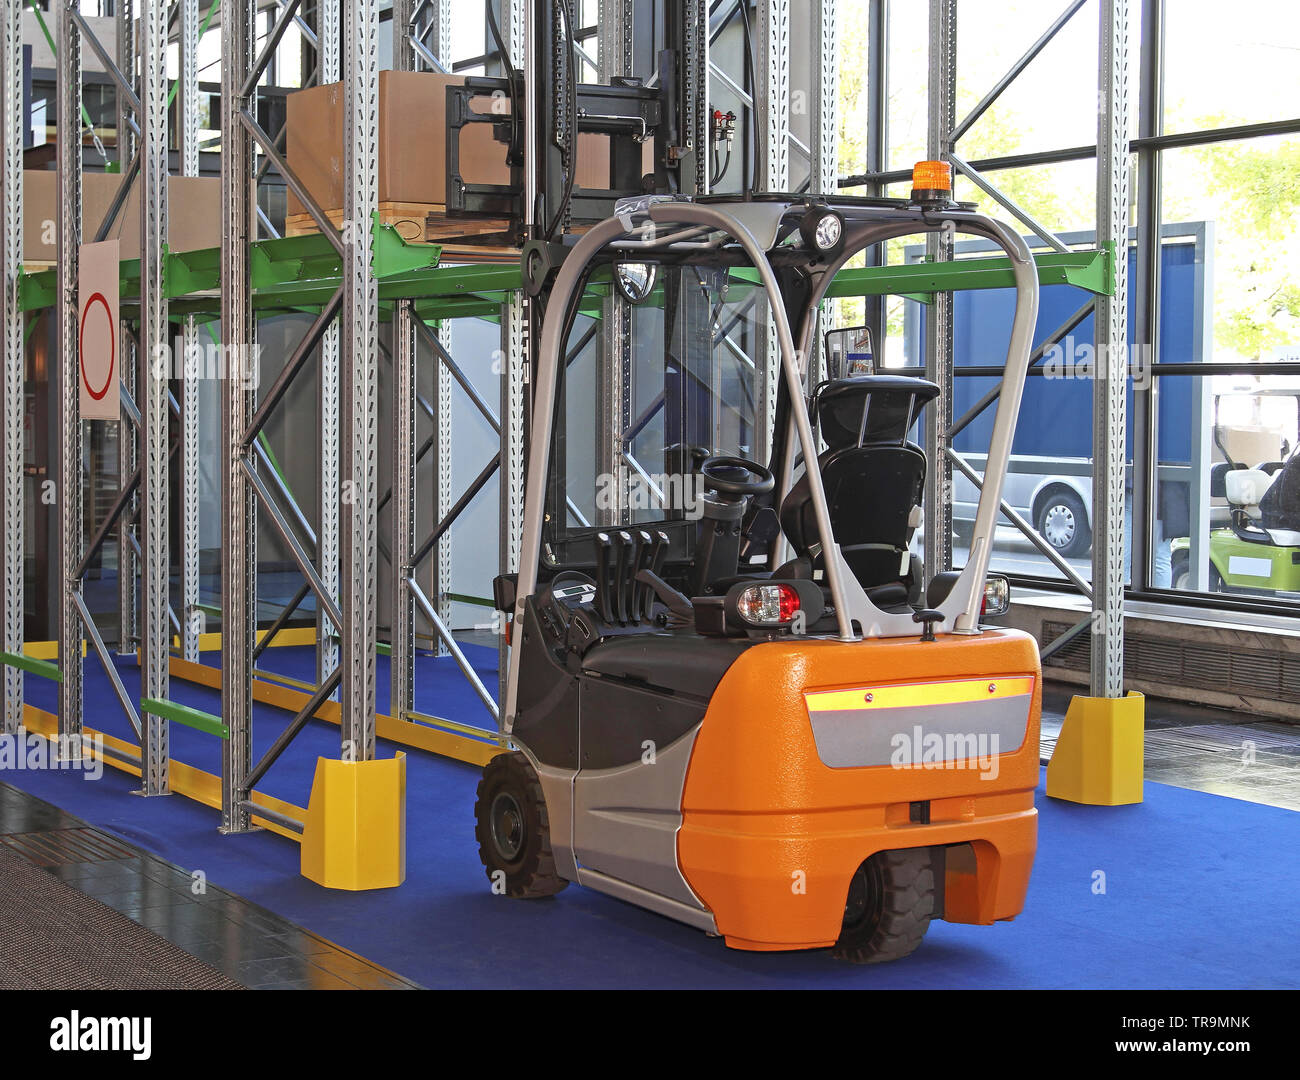 Electric Forklift Truck in Small Distribution Warehouse